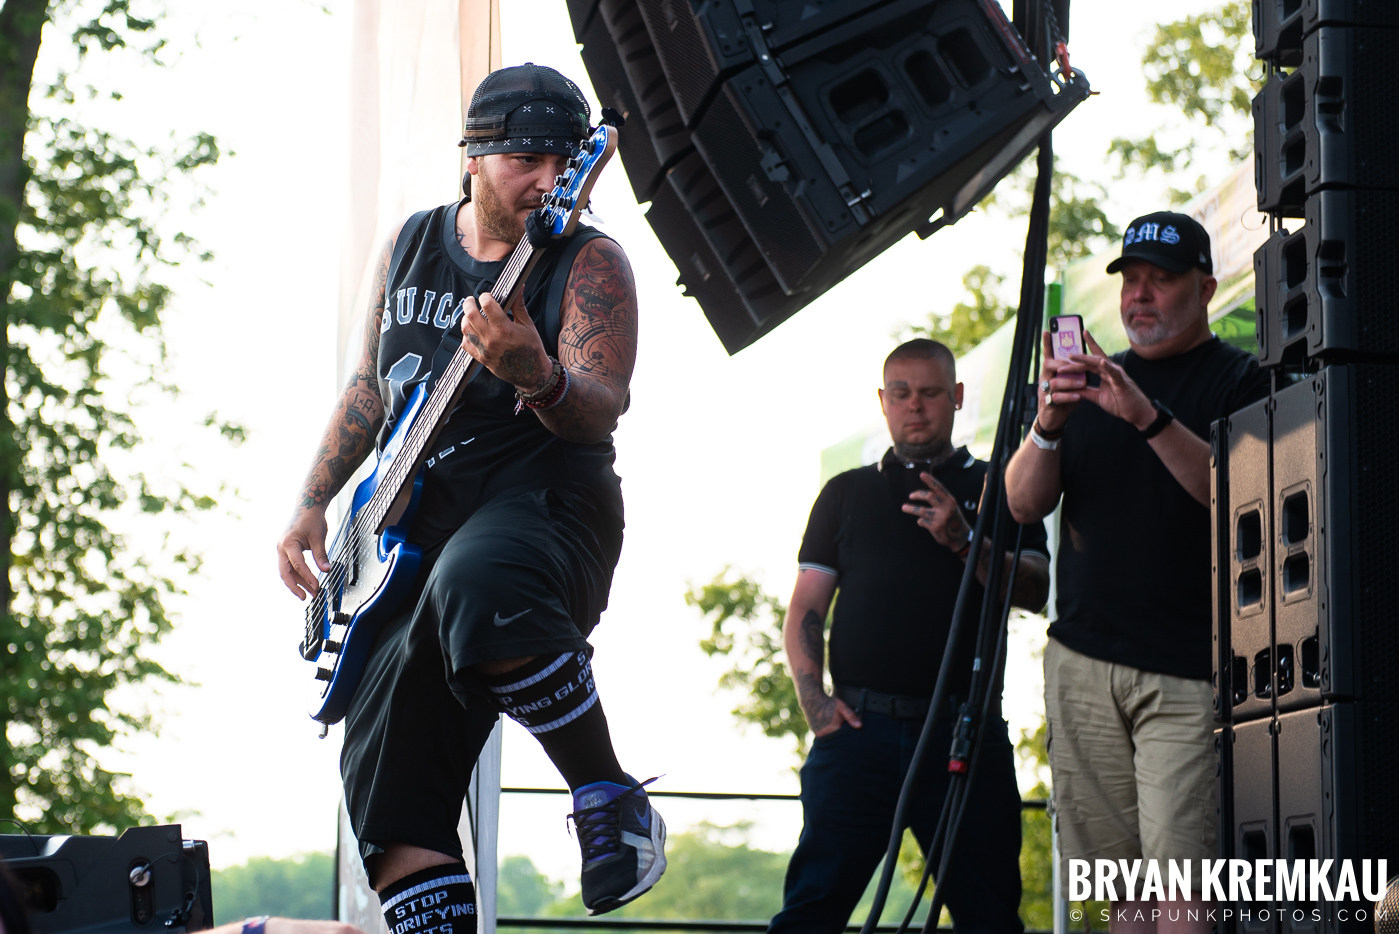 Suicidal Tendencies @ The Bash Music & Craft Beer Festival, Old Bridge Township Raceway Park, Englishtown, NJ - 6.2.19 (31)